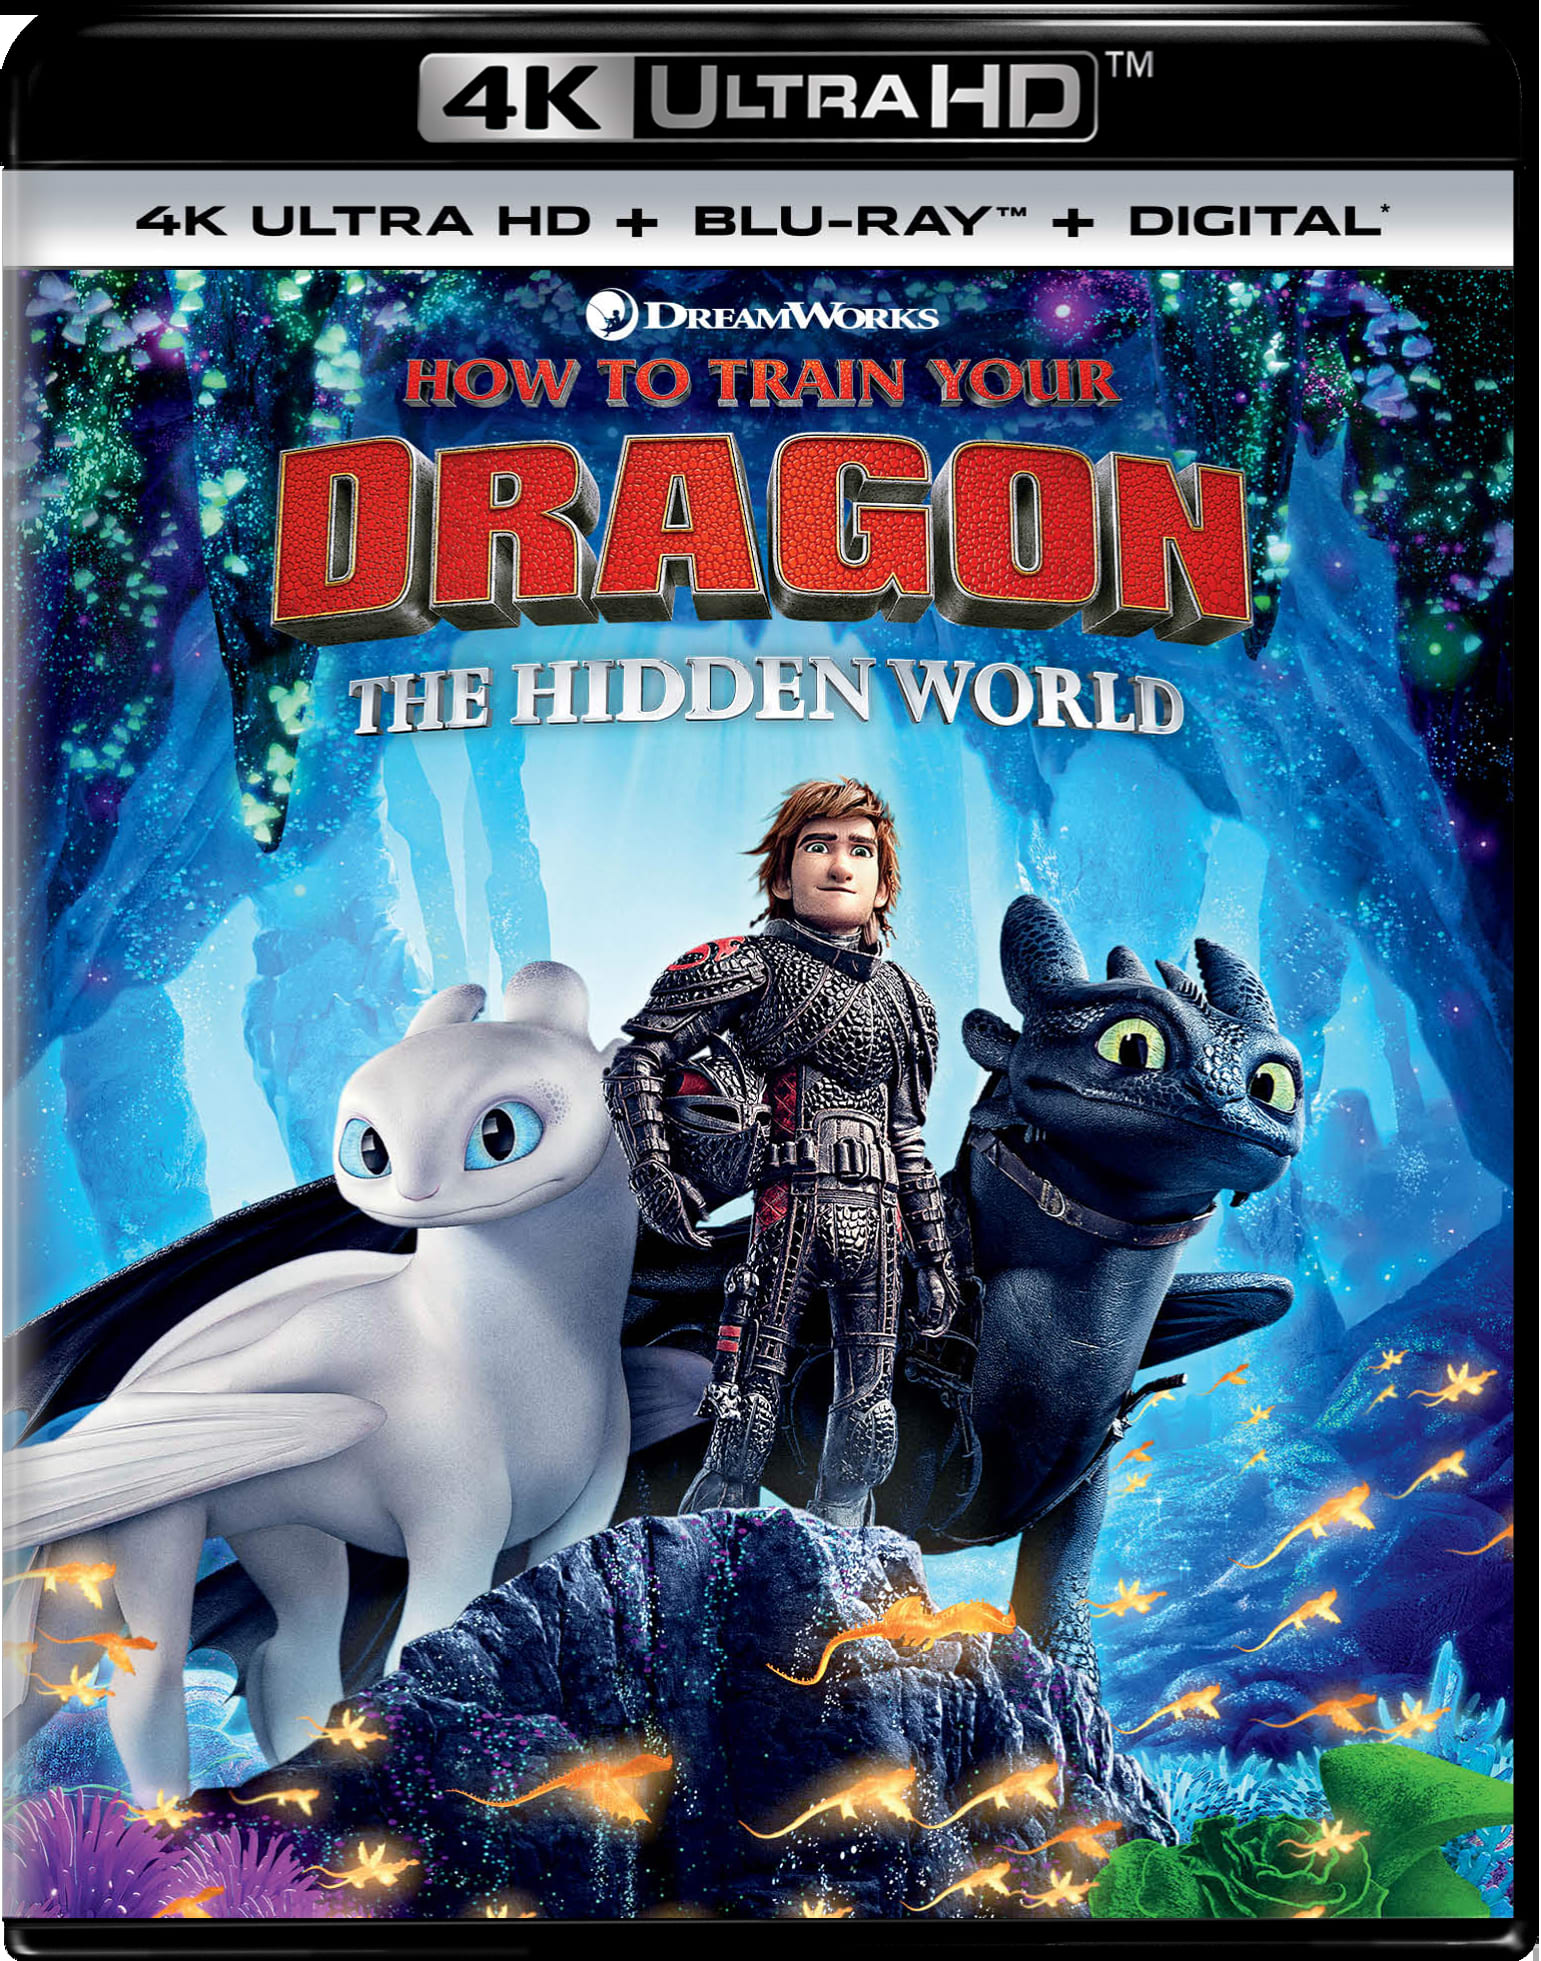 How to Train Your Dragon - The Hidden World (4K Ultra HD) [UHD]